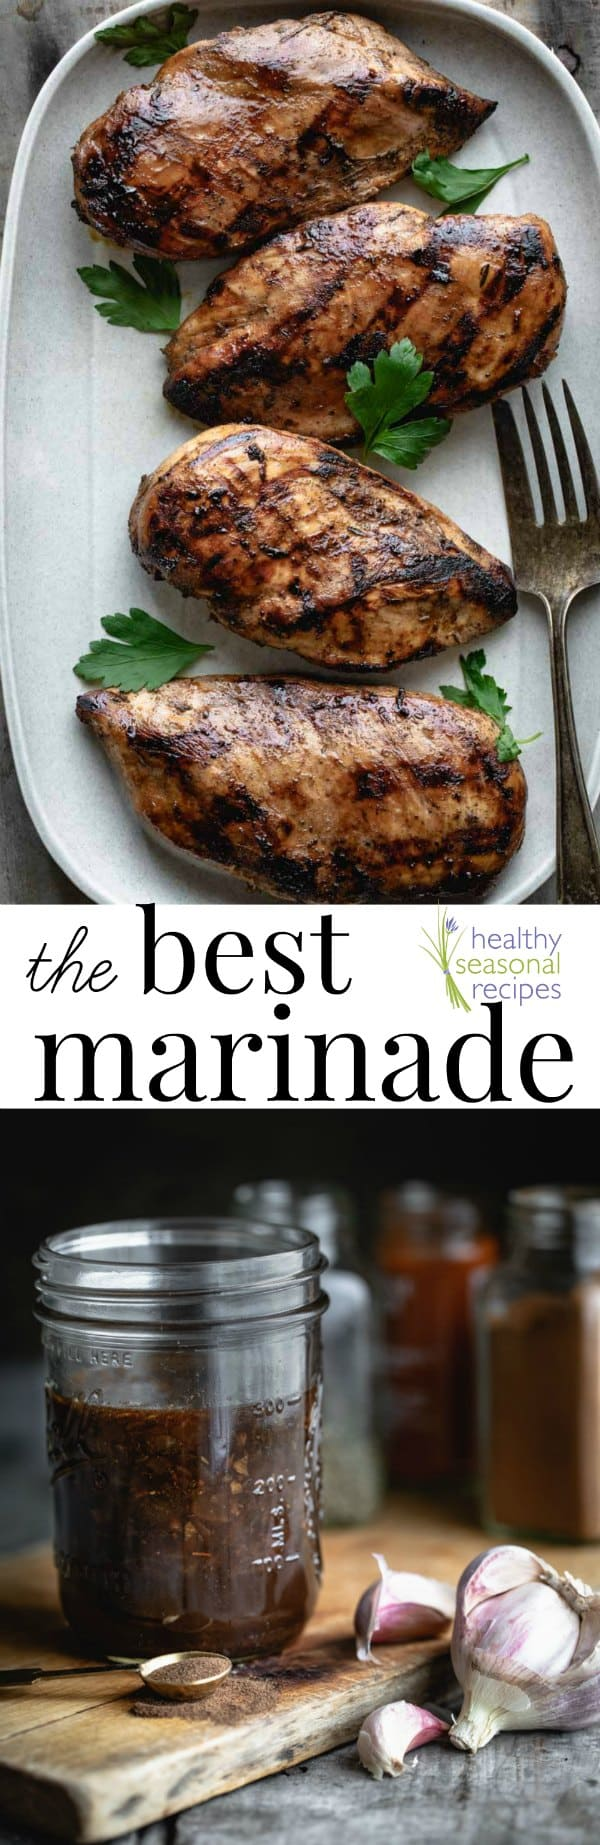 This is my very best chicken marinade of all time! You simply have to make it! This recipe, originally called Isabel's Island Chicken Marinade, is one I have made so many times over the years I could do it in my sleep. And many readers and friends have told me how much they love it. #chicken #marinde #bestmarinade #healthy